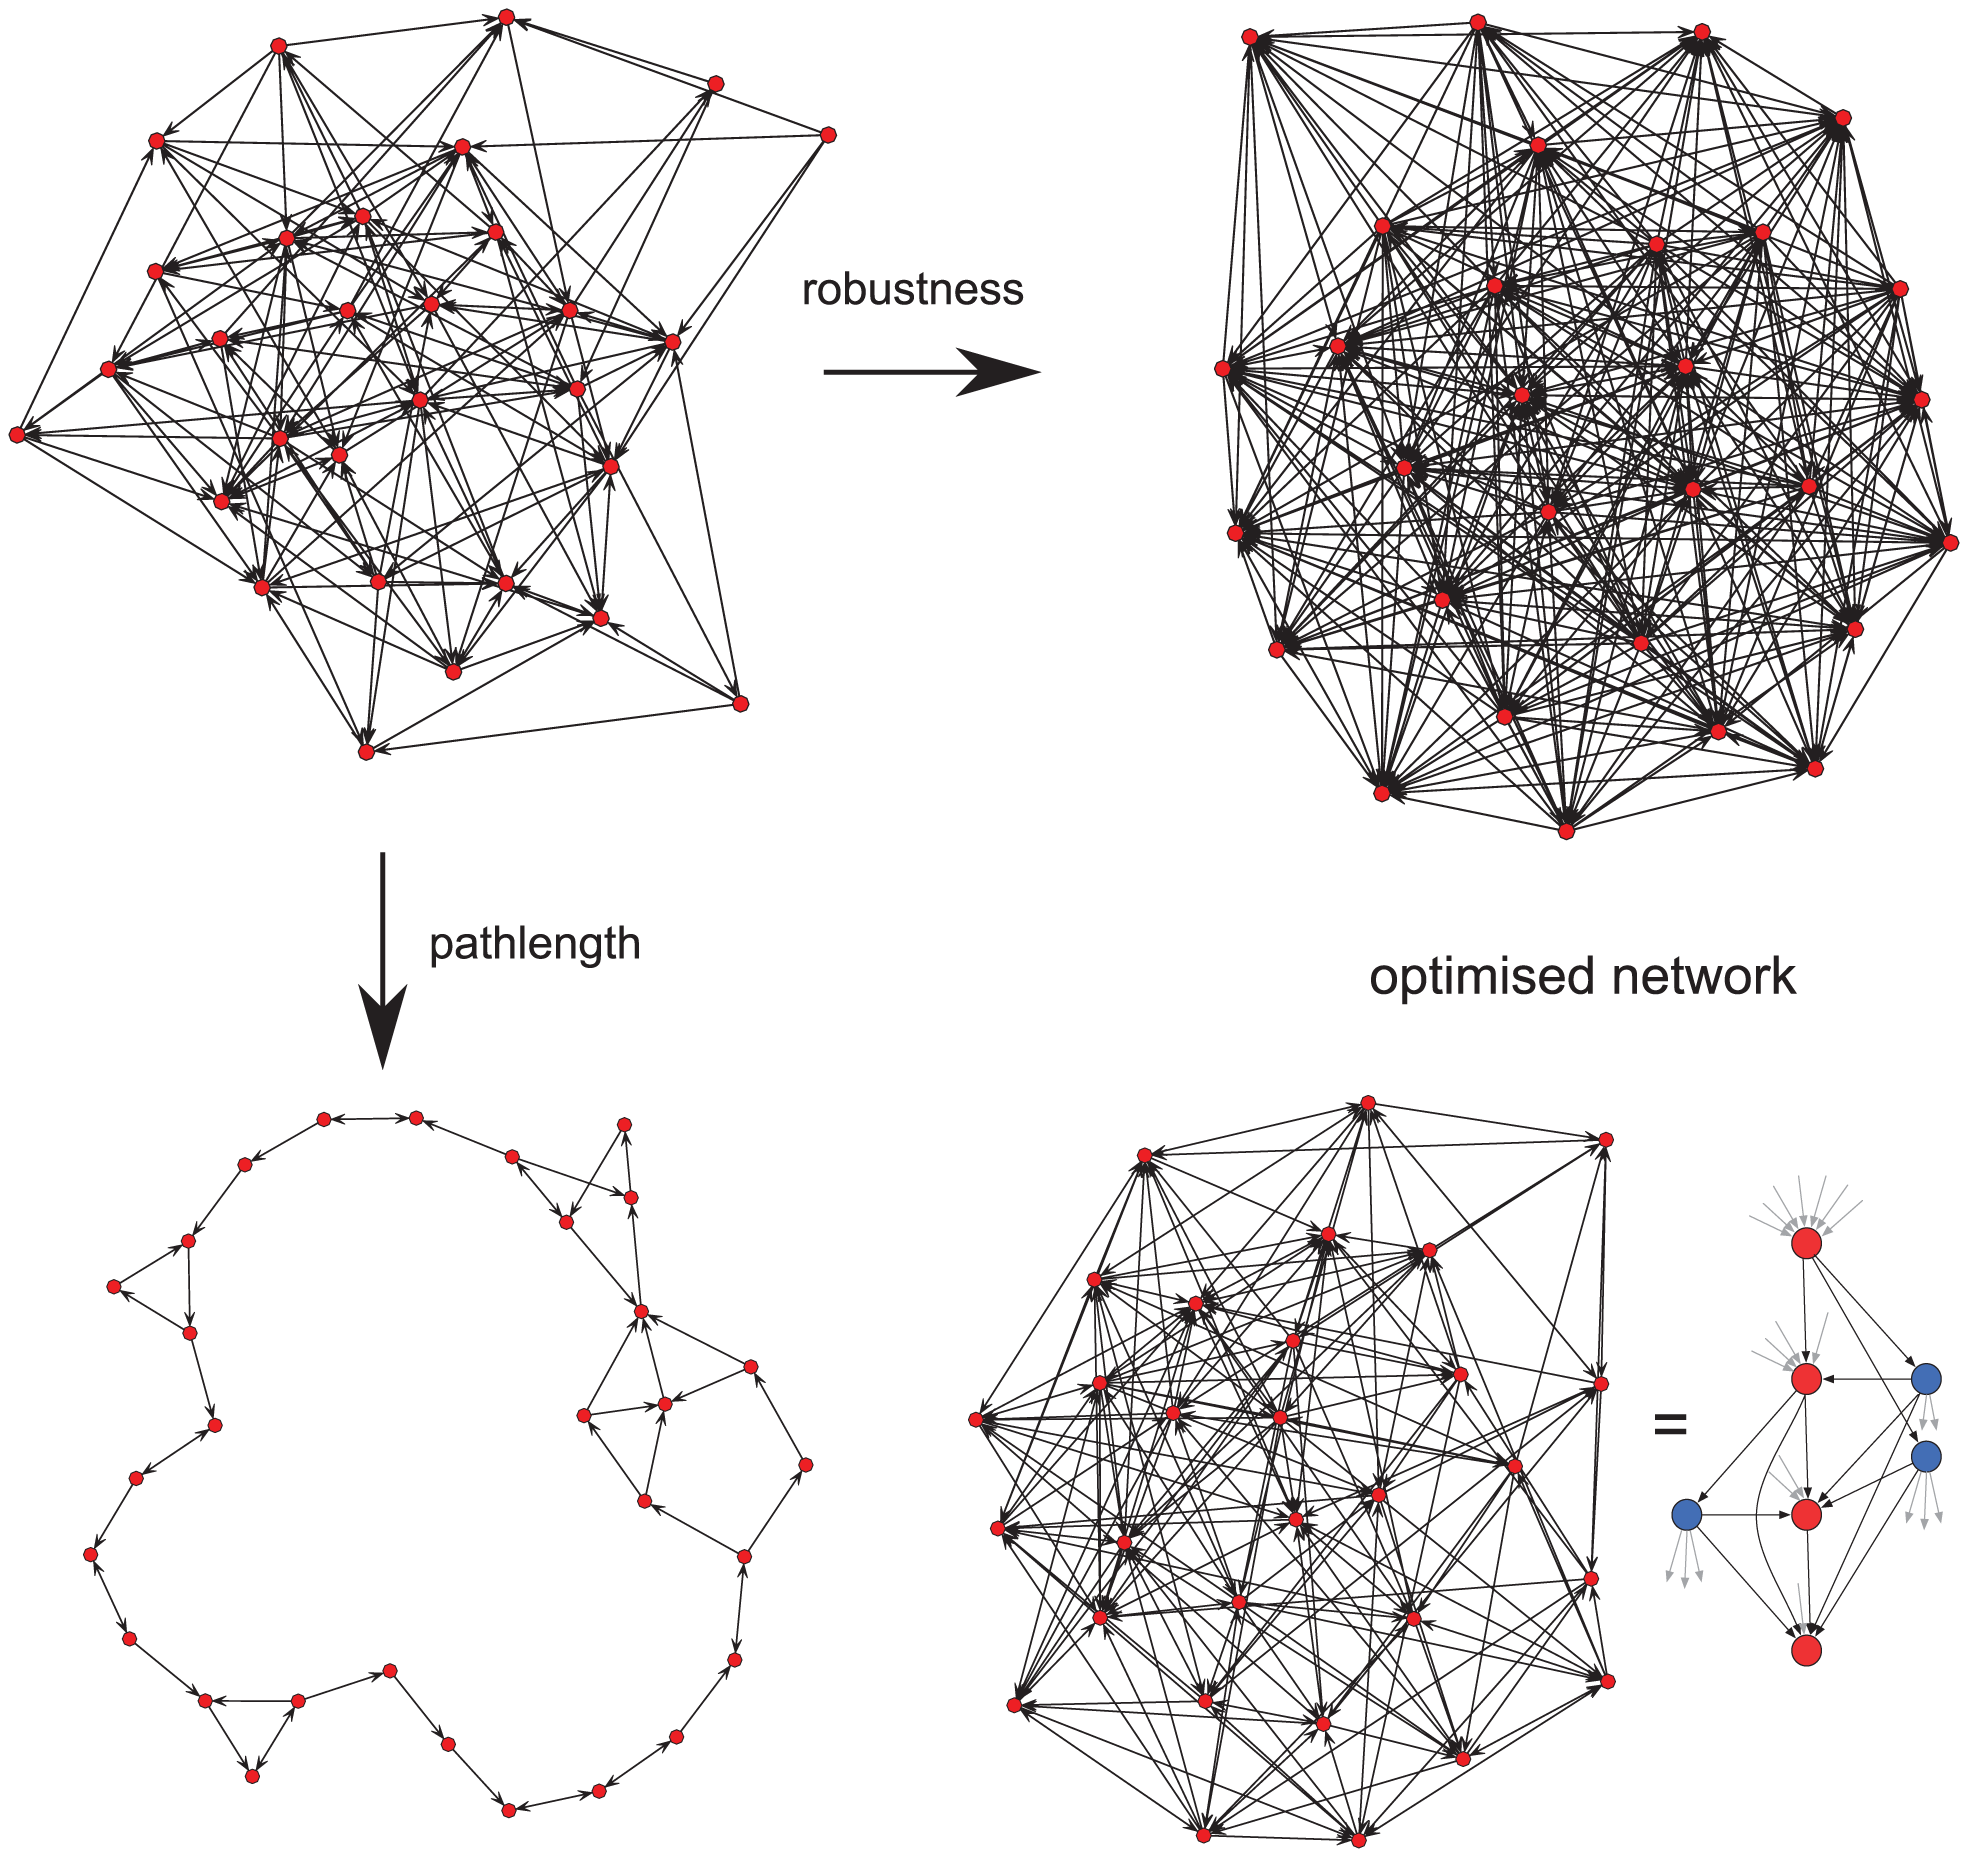 Network optimisation over two evolutionary traits.